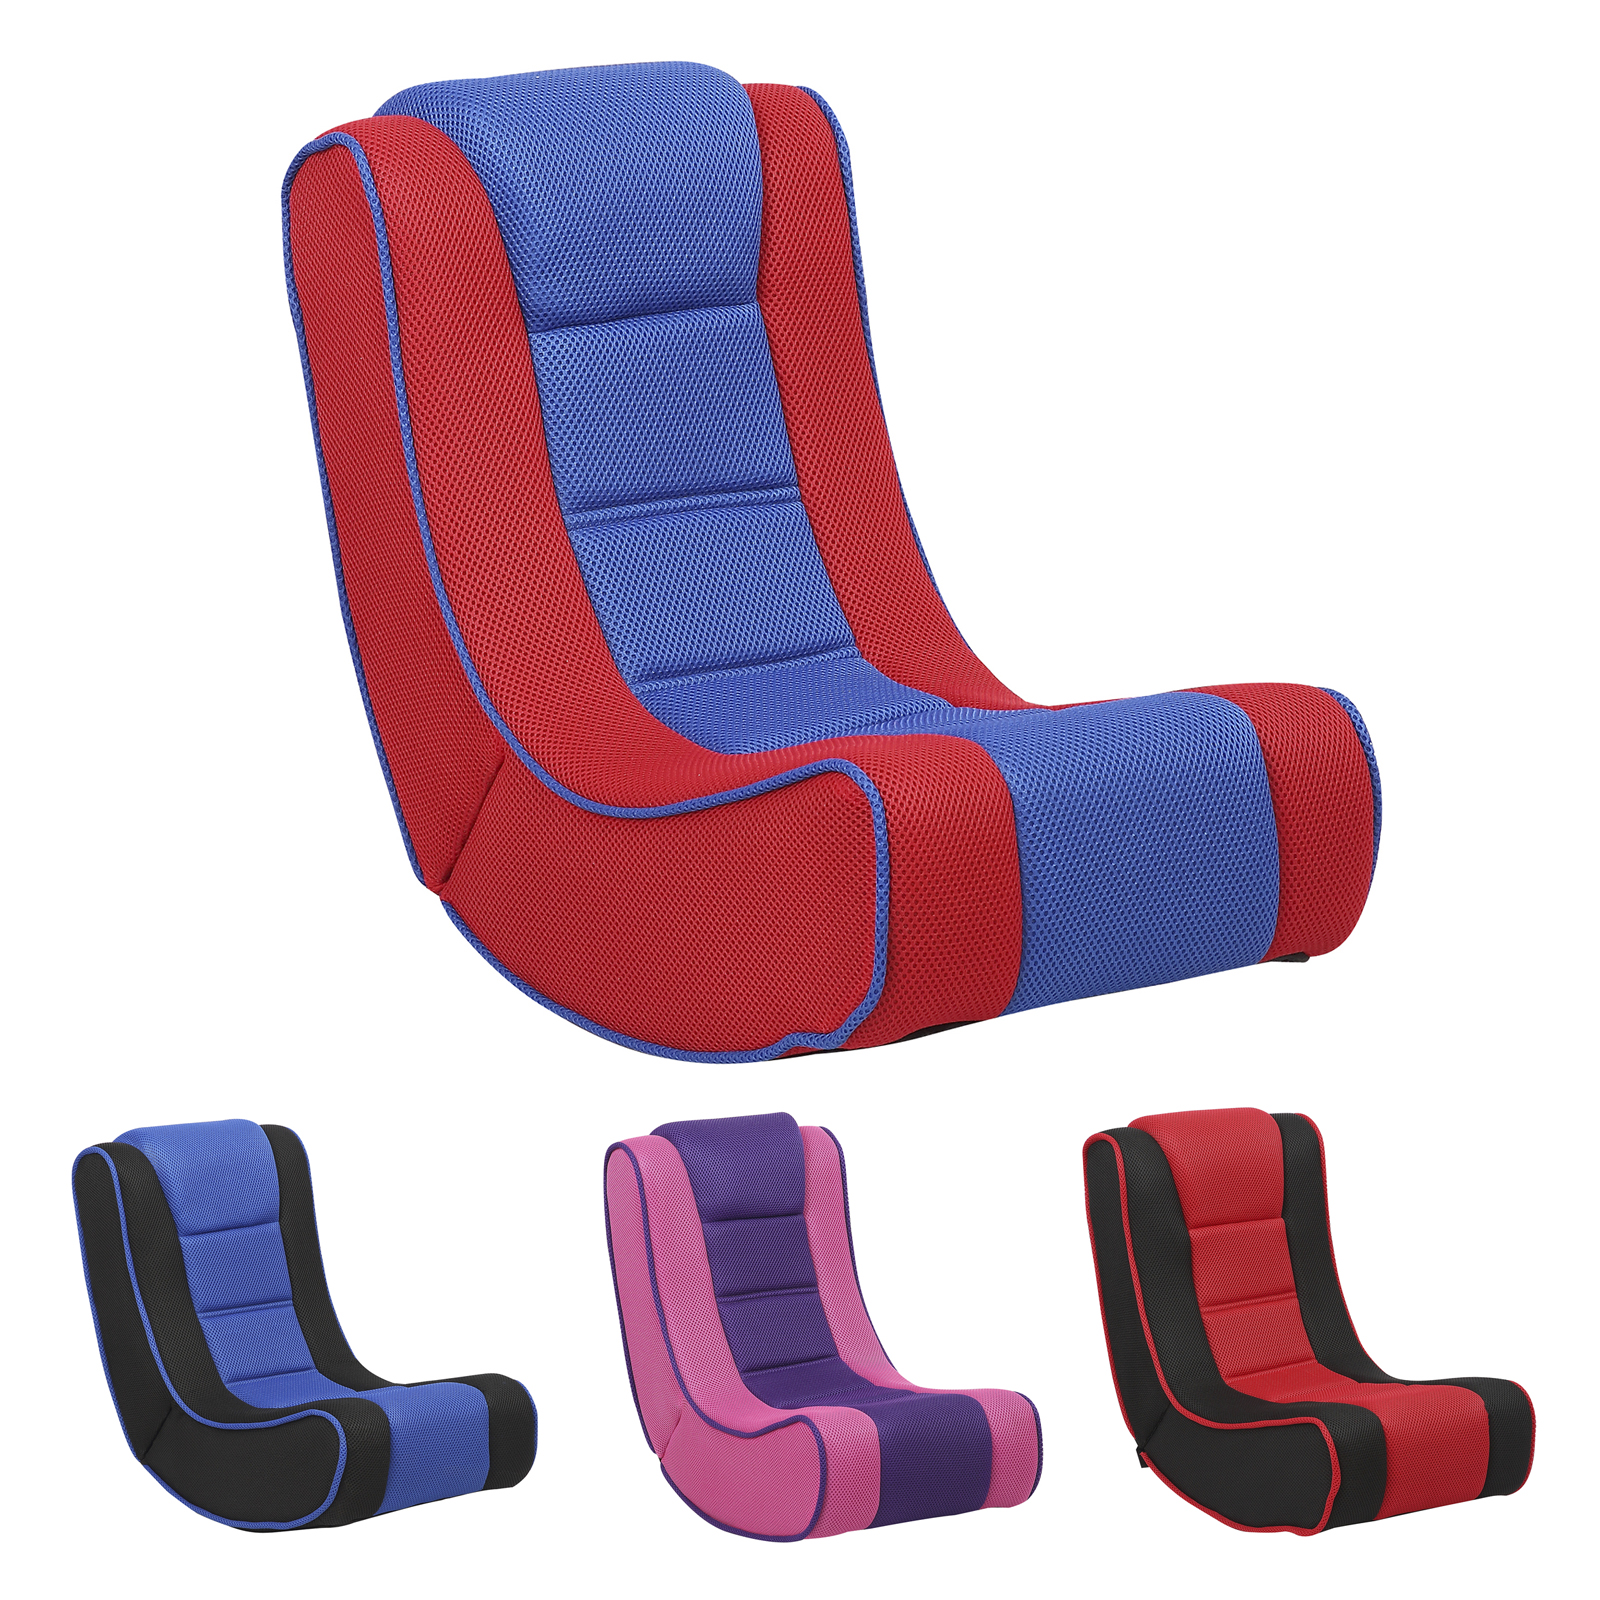 Foldable Gaming Chair Kids Lightweight Folding Gaming Chair Comfortable Padded